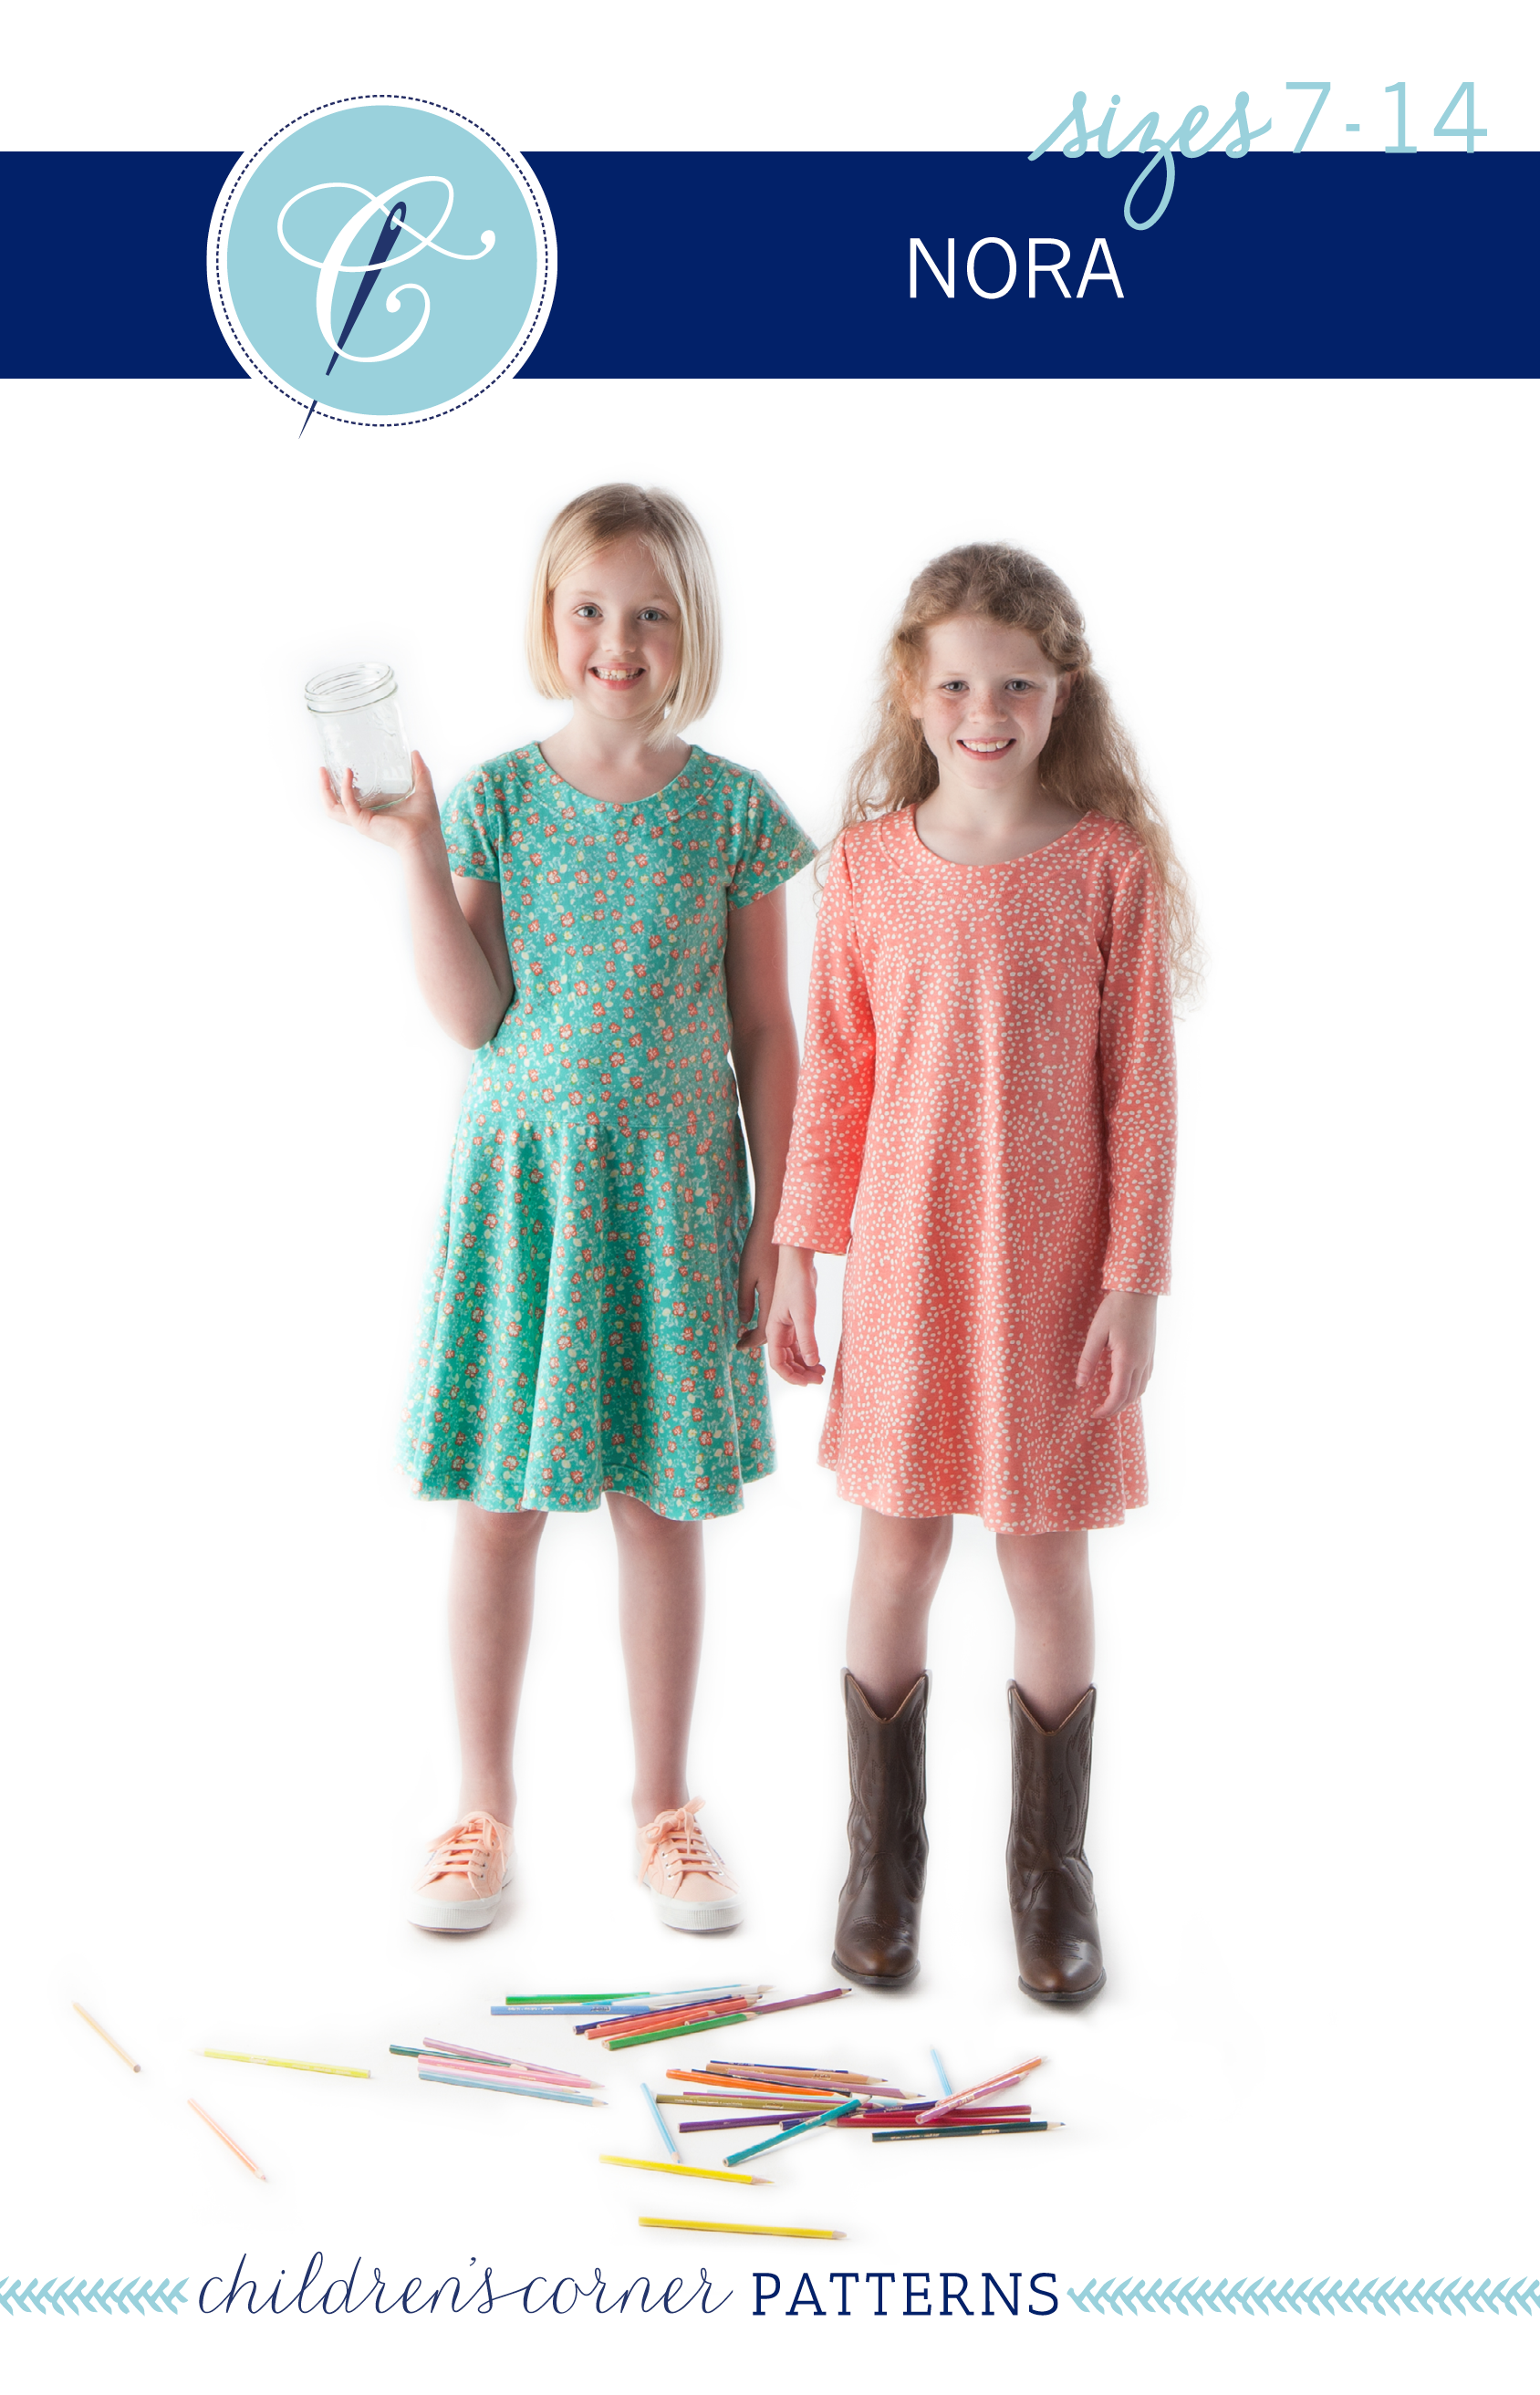 Noras knit dress dress patterns patterns and silhouettes noras knit dress bankloansurffo Image collections